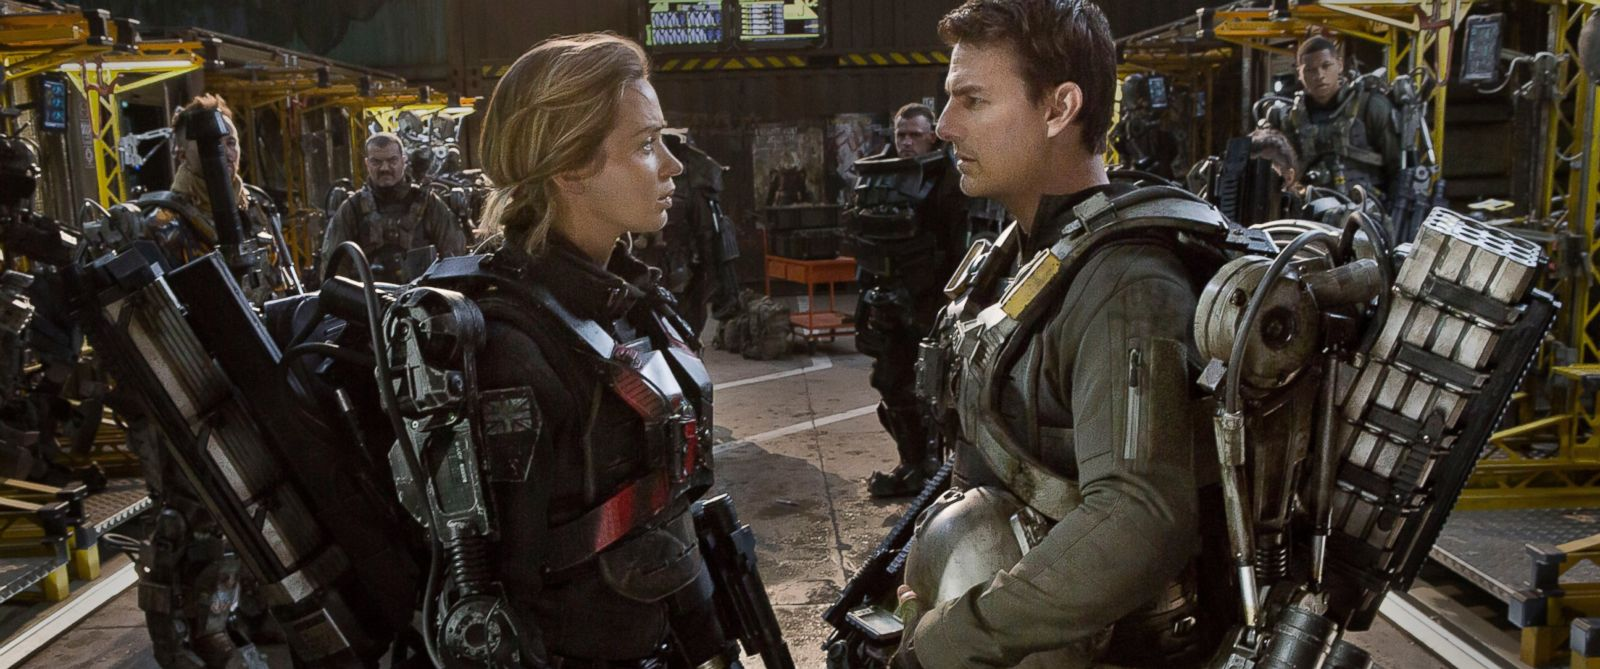 """PHOTO: Emily Blunt, left, as Rita and Tom Cruise as Cage, in Warner Bros. Pictures and Village Roadshow Pictures sci-fi thriller """"Edge of Tomorrow."""""""